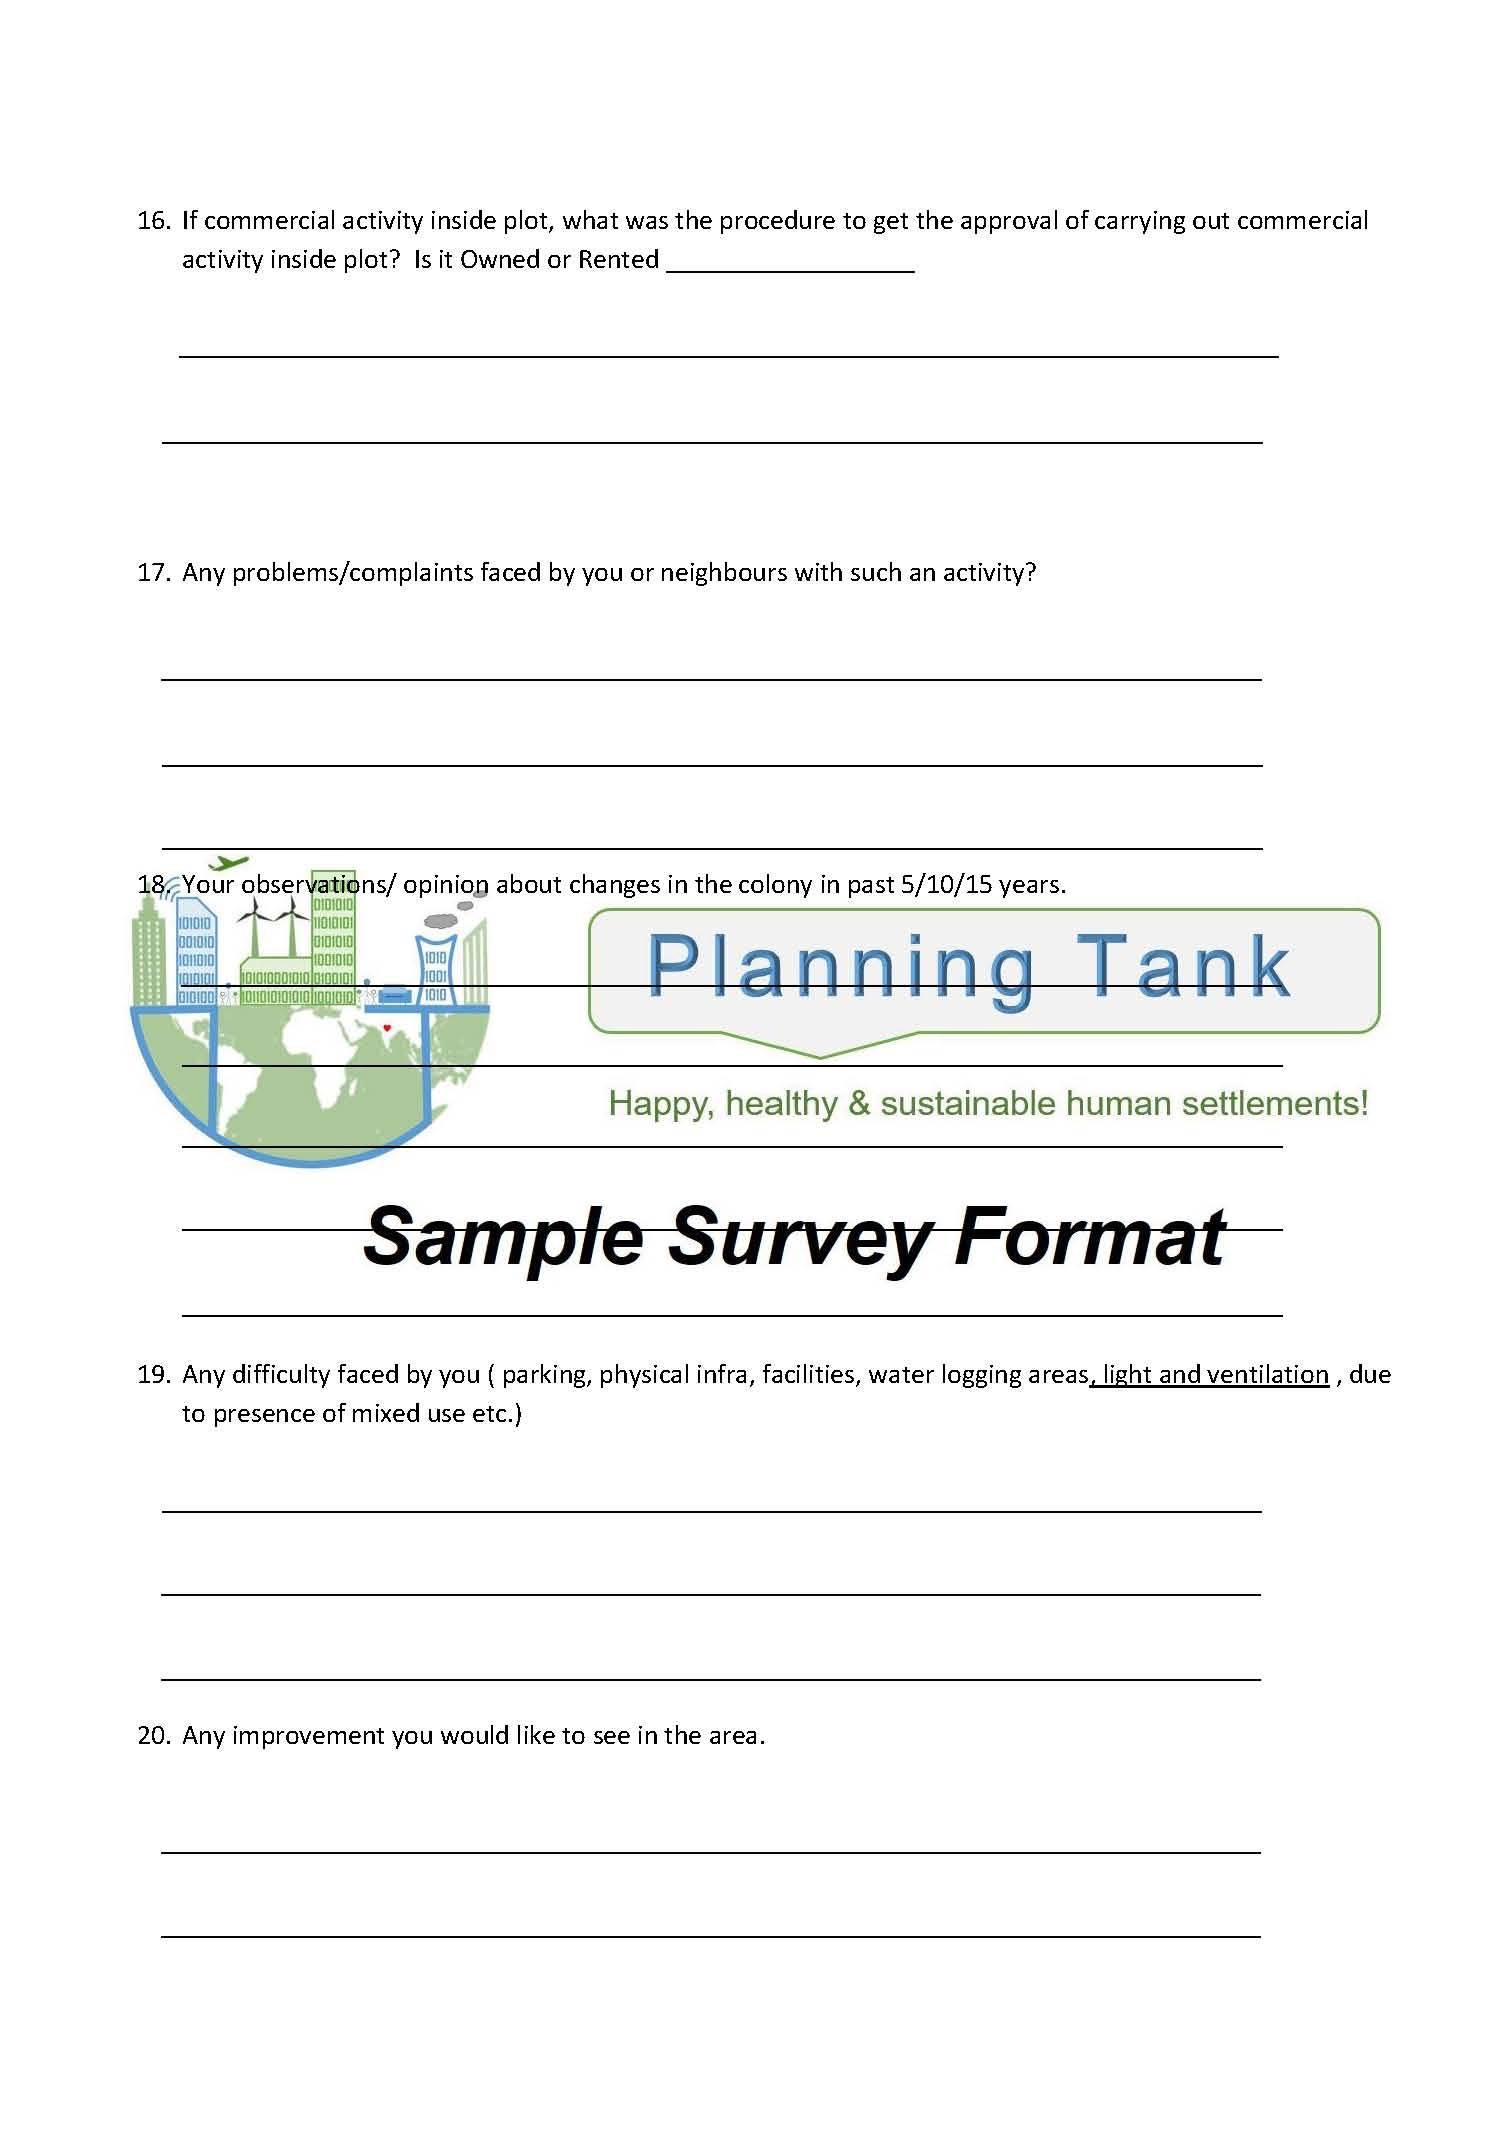 Survey Questionnaire Sample